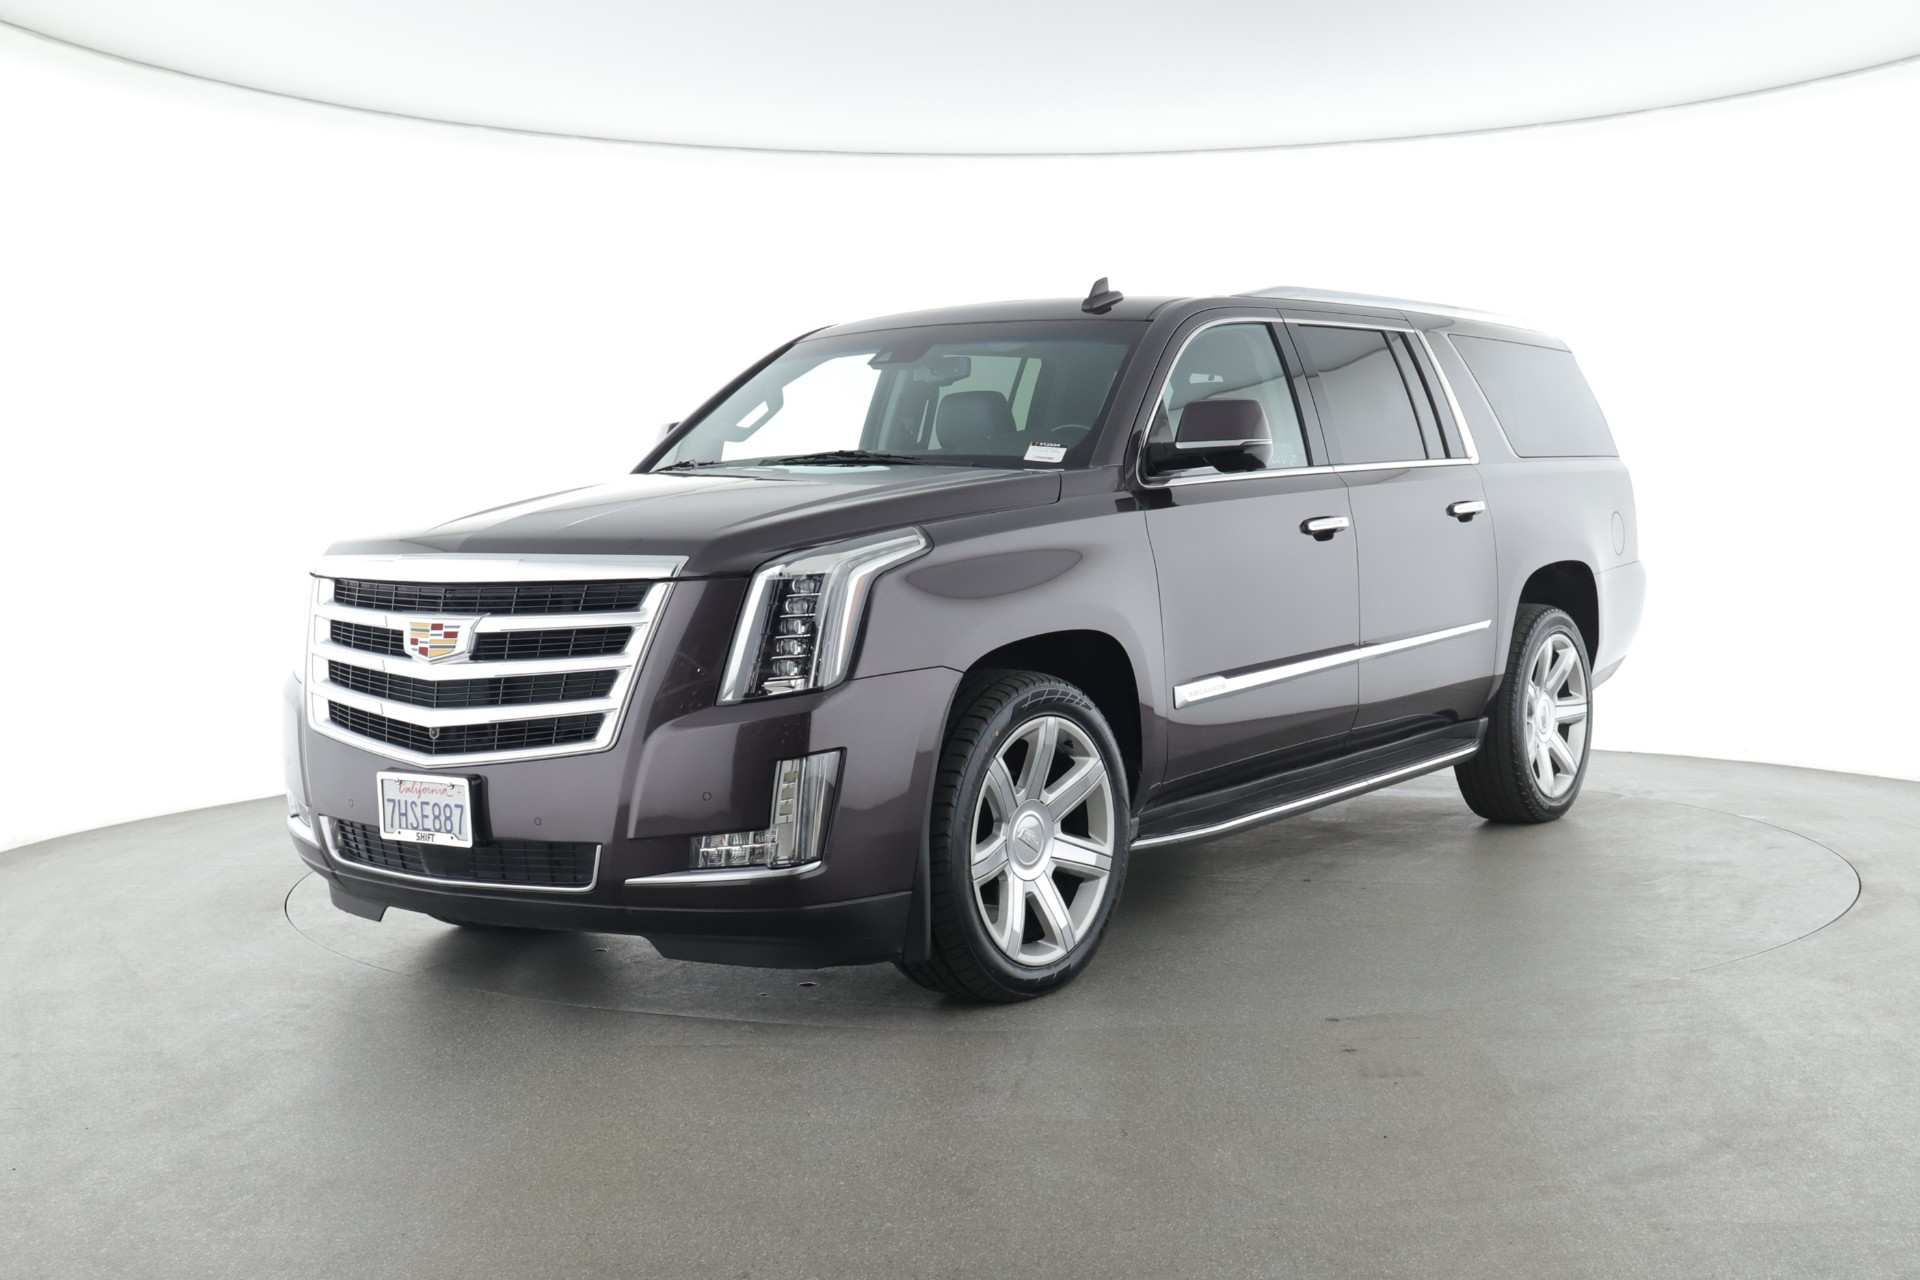 How Much Is A Cadillac Escalade? A Complete Guide On Prices And Features